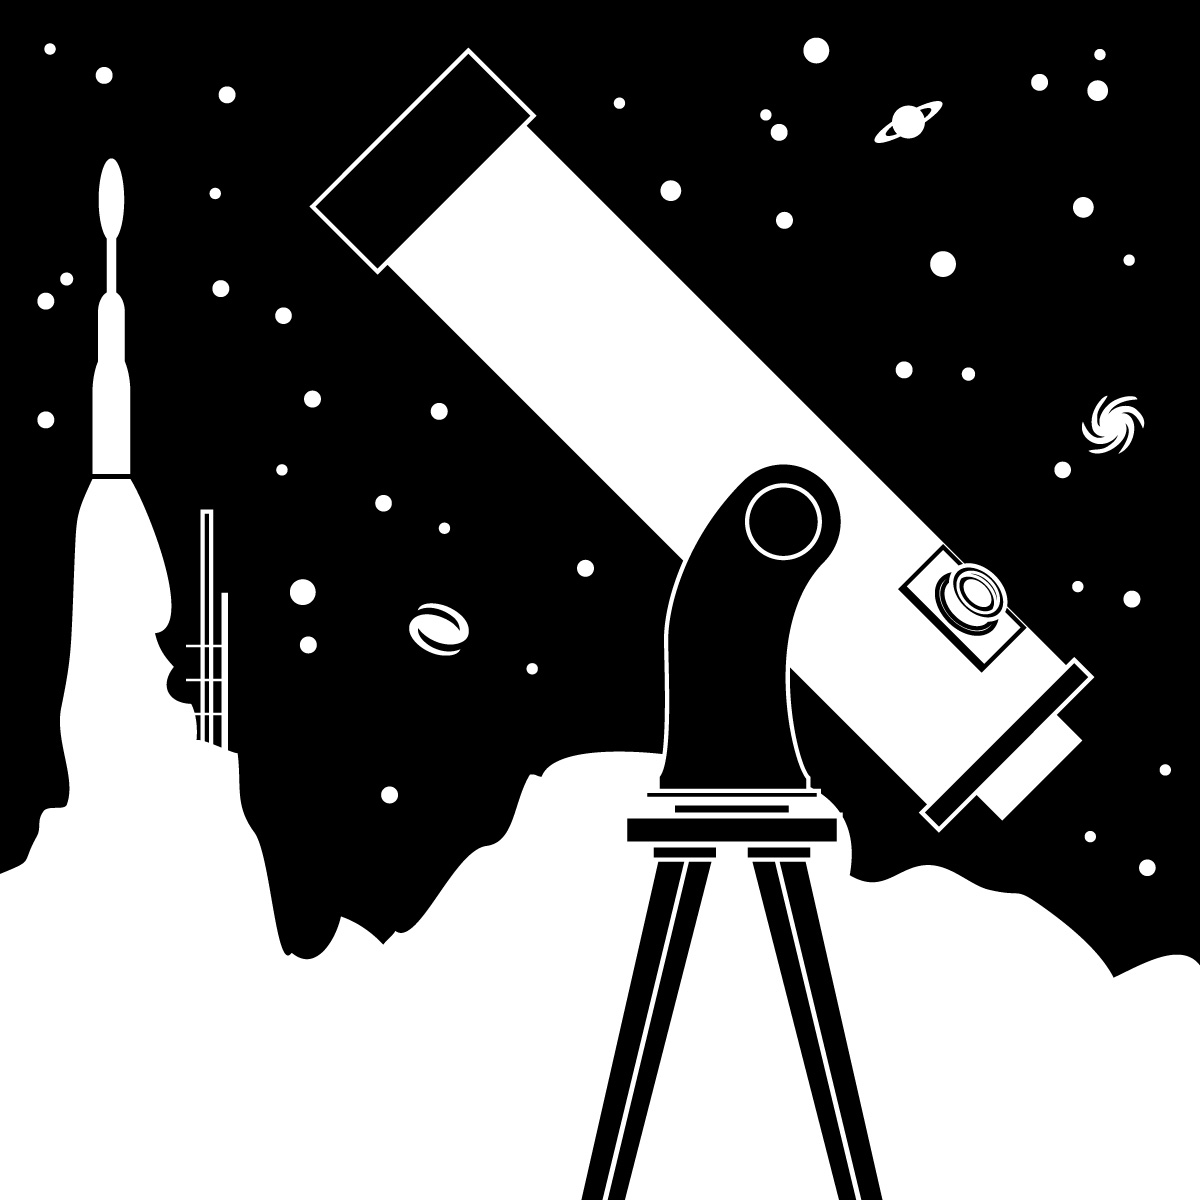 Night Sky clipart astronomy Cliparts Clipart Astronomy Free Astronomy